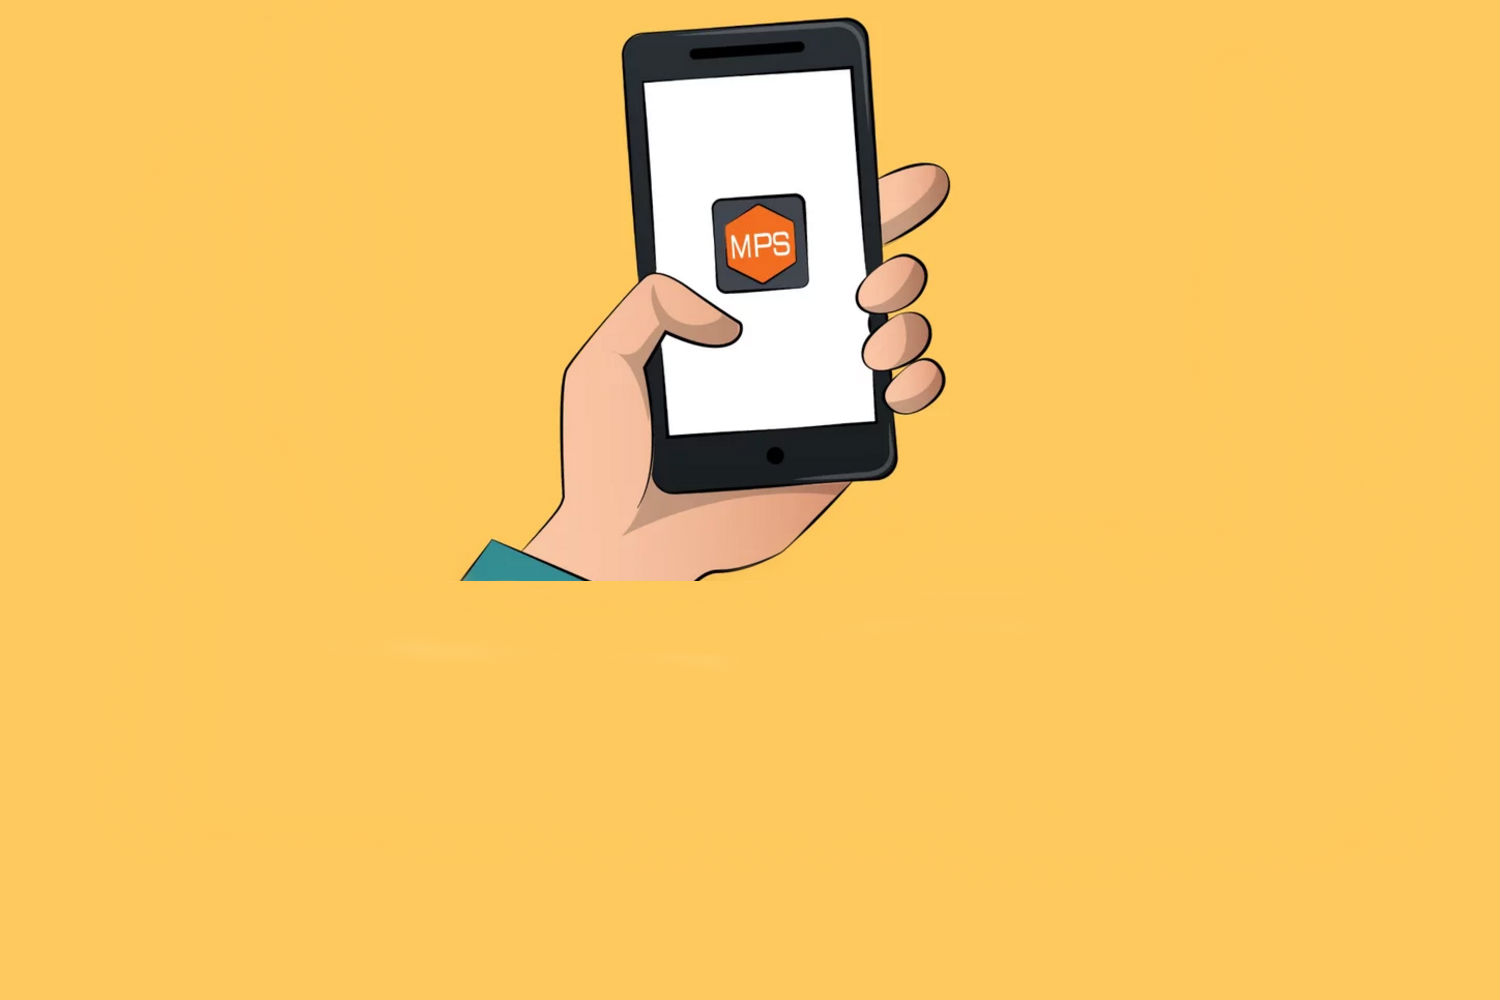 GuardianMPS New iPhone app released now